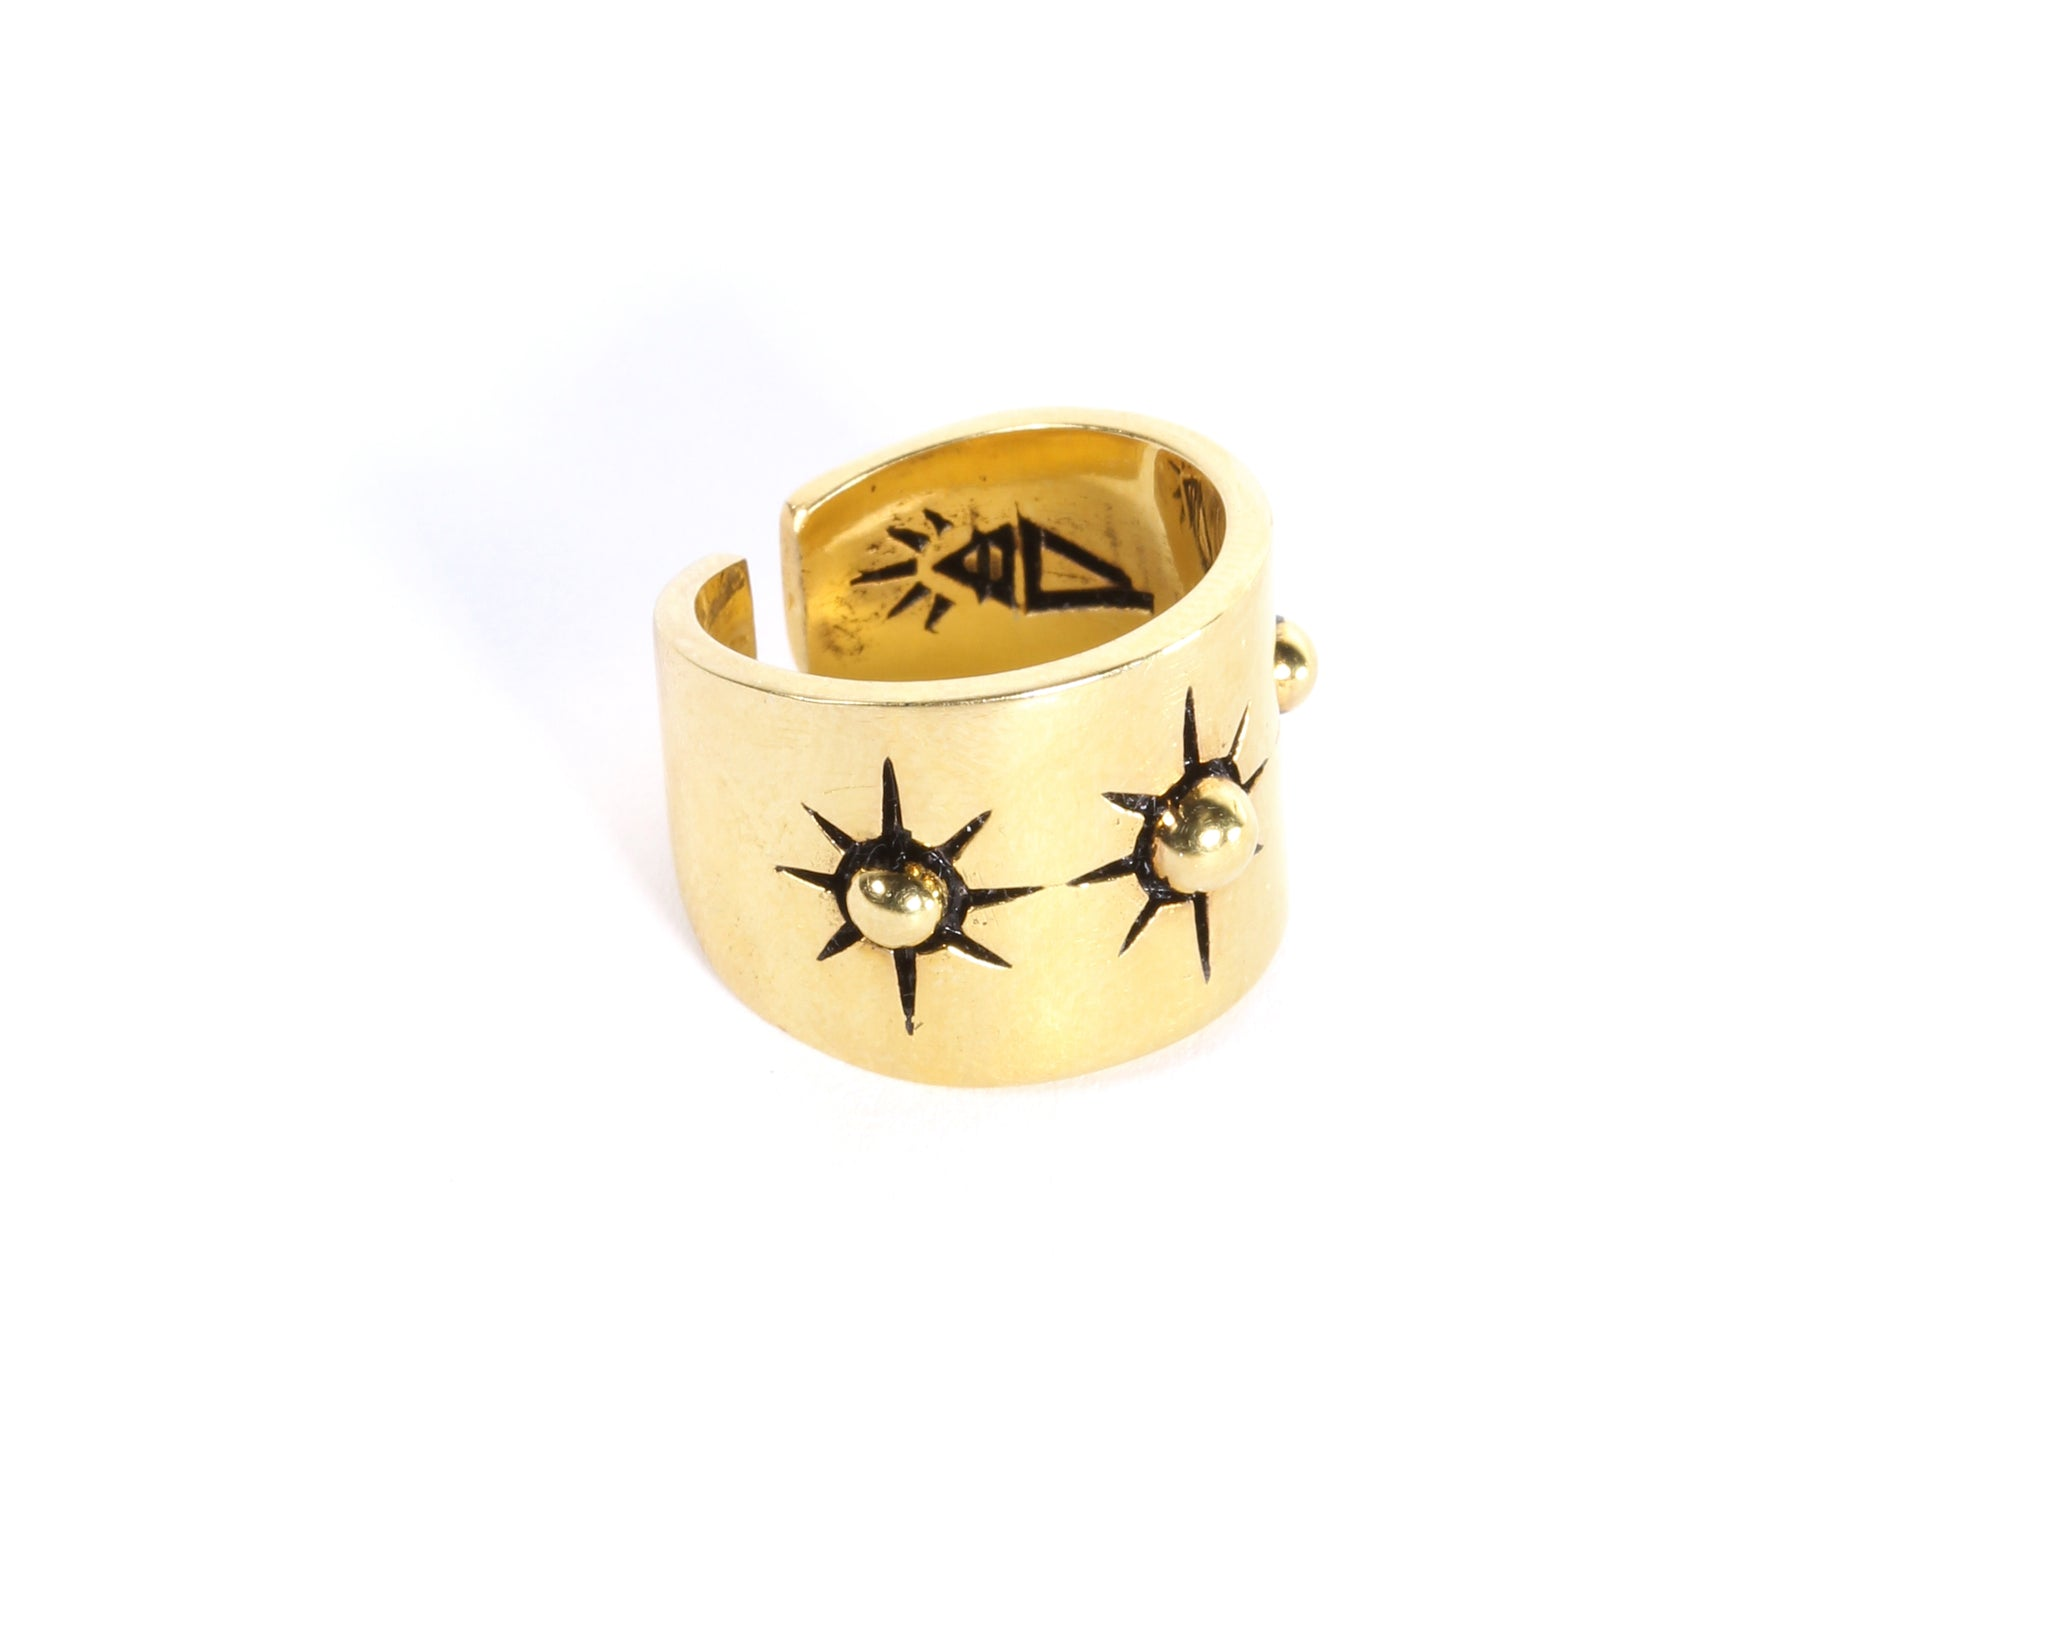 Canadian boho style rings, gold cigar band